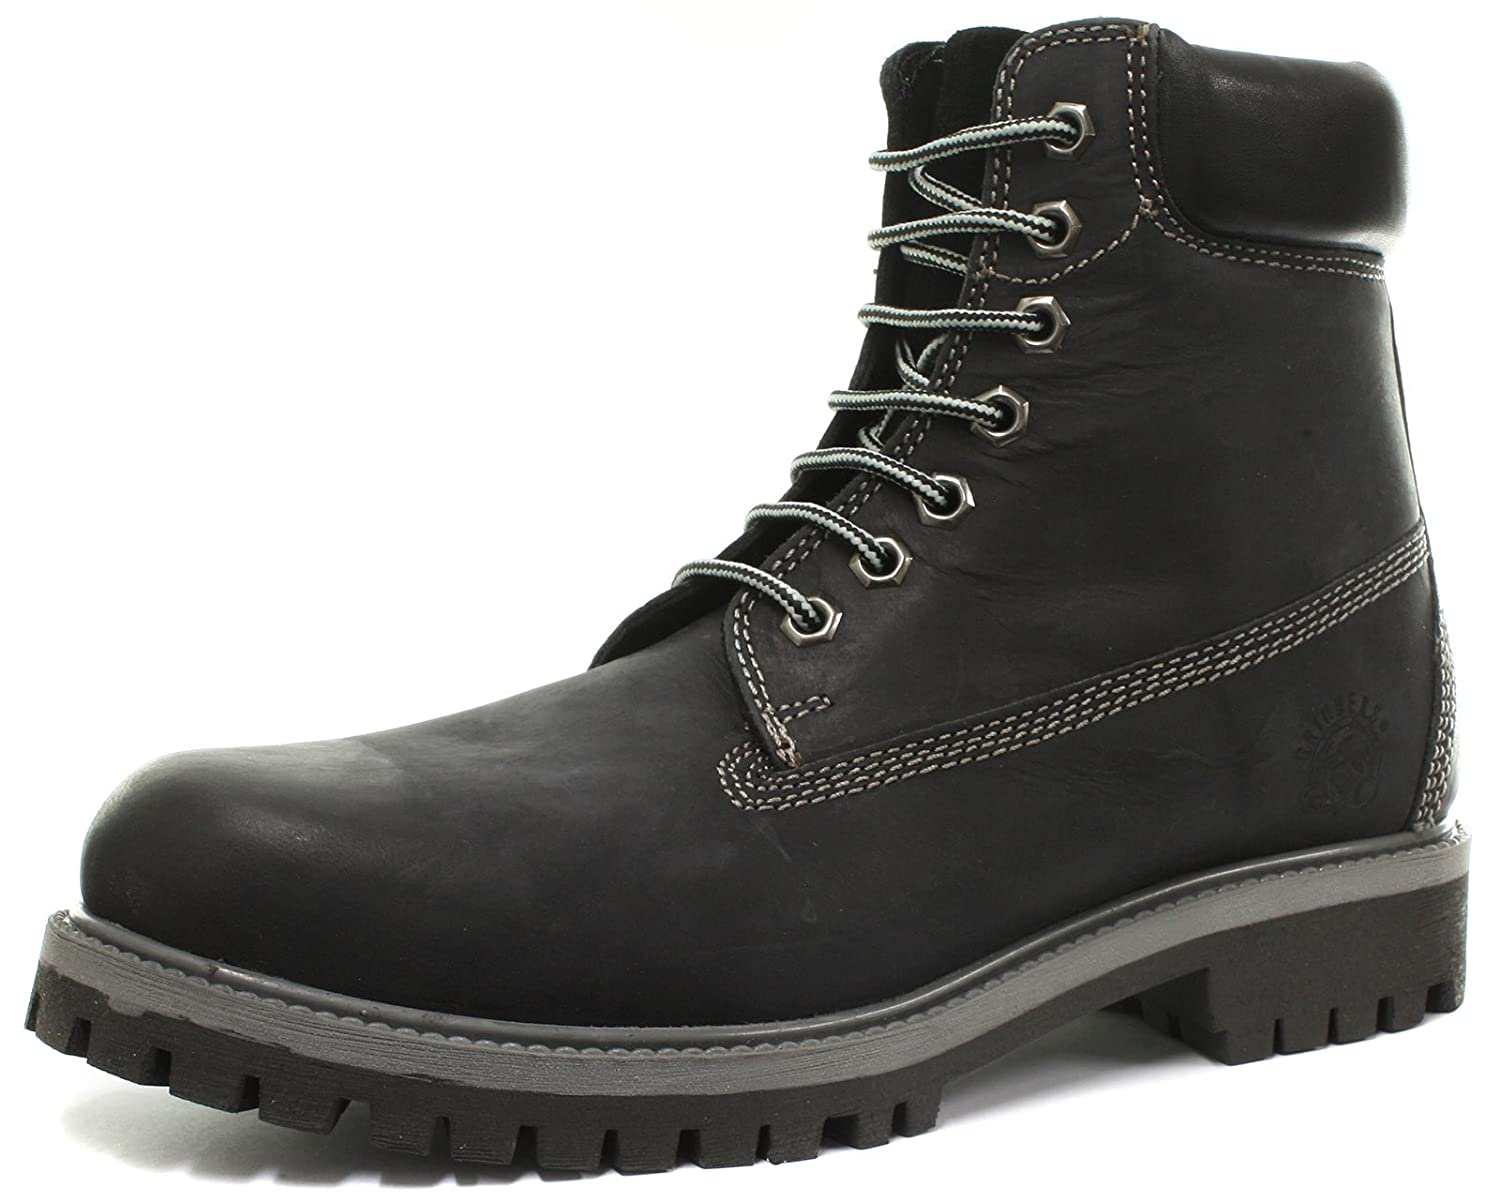 Grinders Brixton Herren Stiefel Black Oil Distress